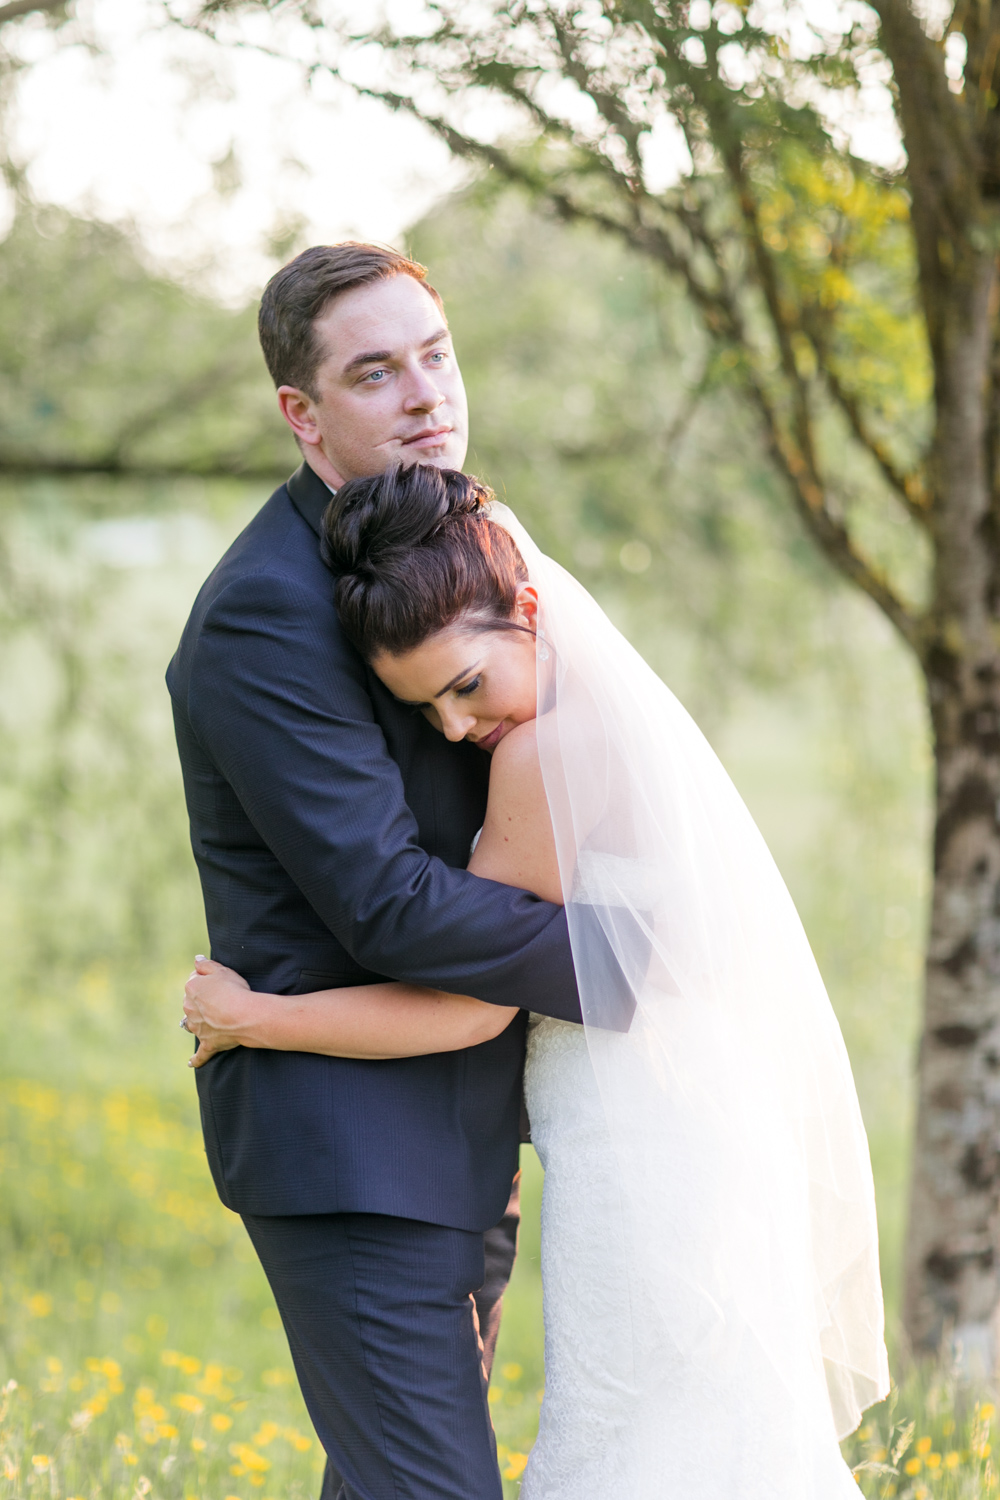 bridal photoshoot with bride and groom wrapped around each other